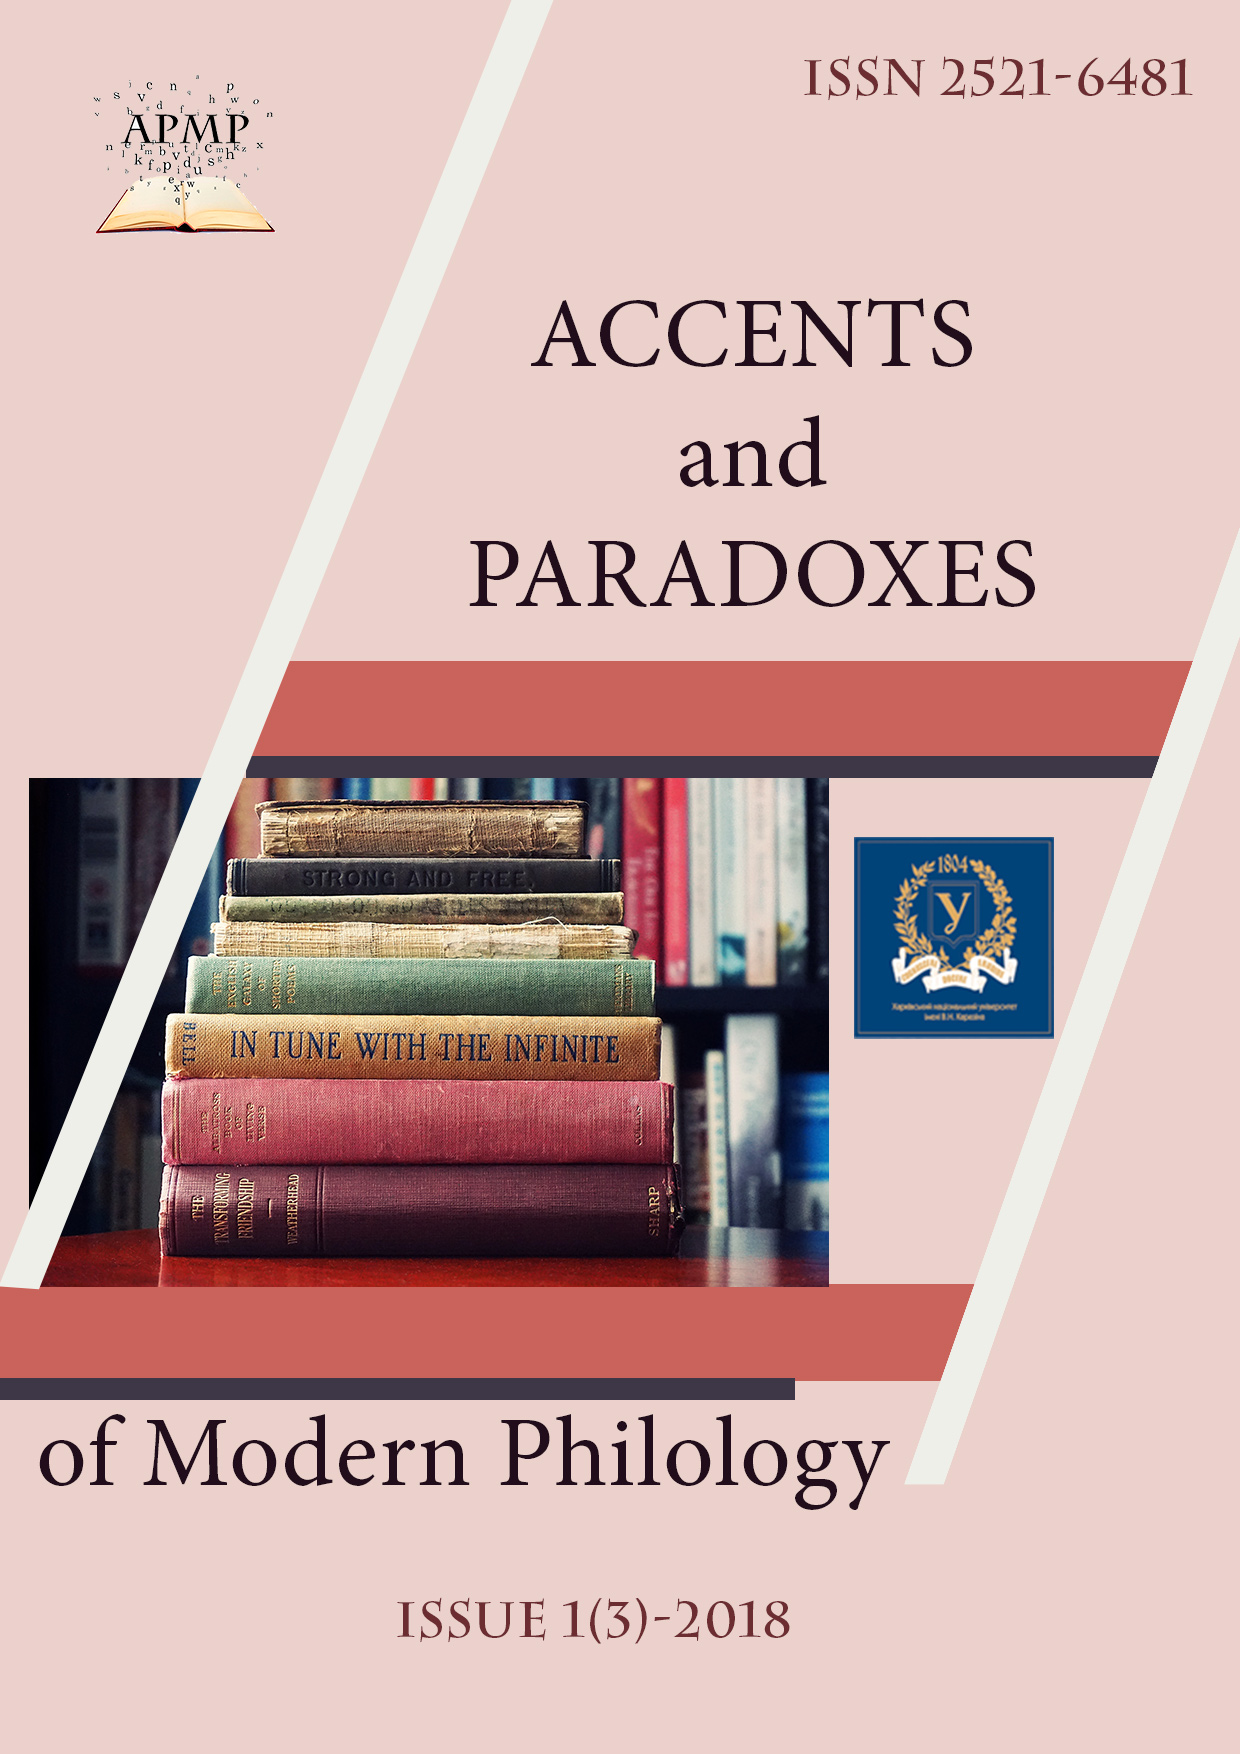 Accents and Paradoxes of Modern Philology - Issue 3